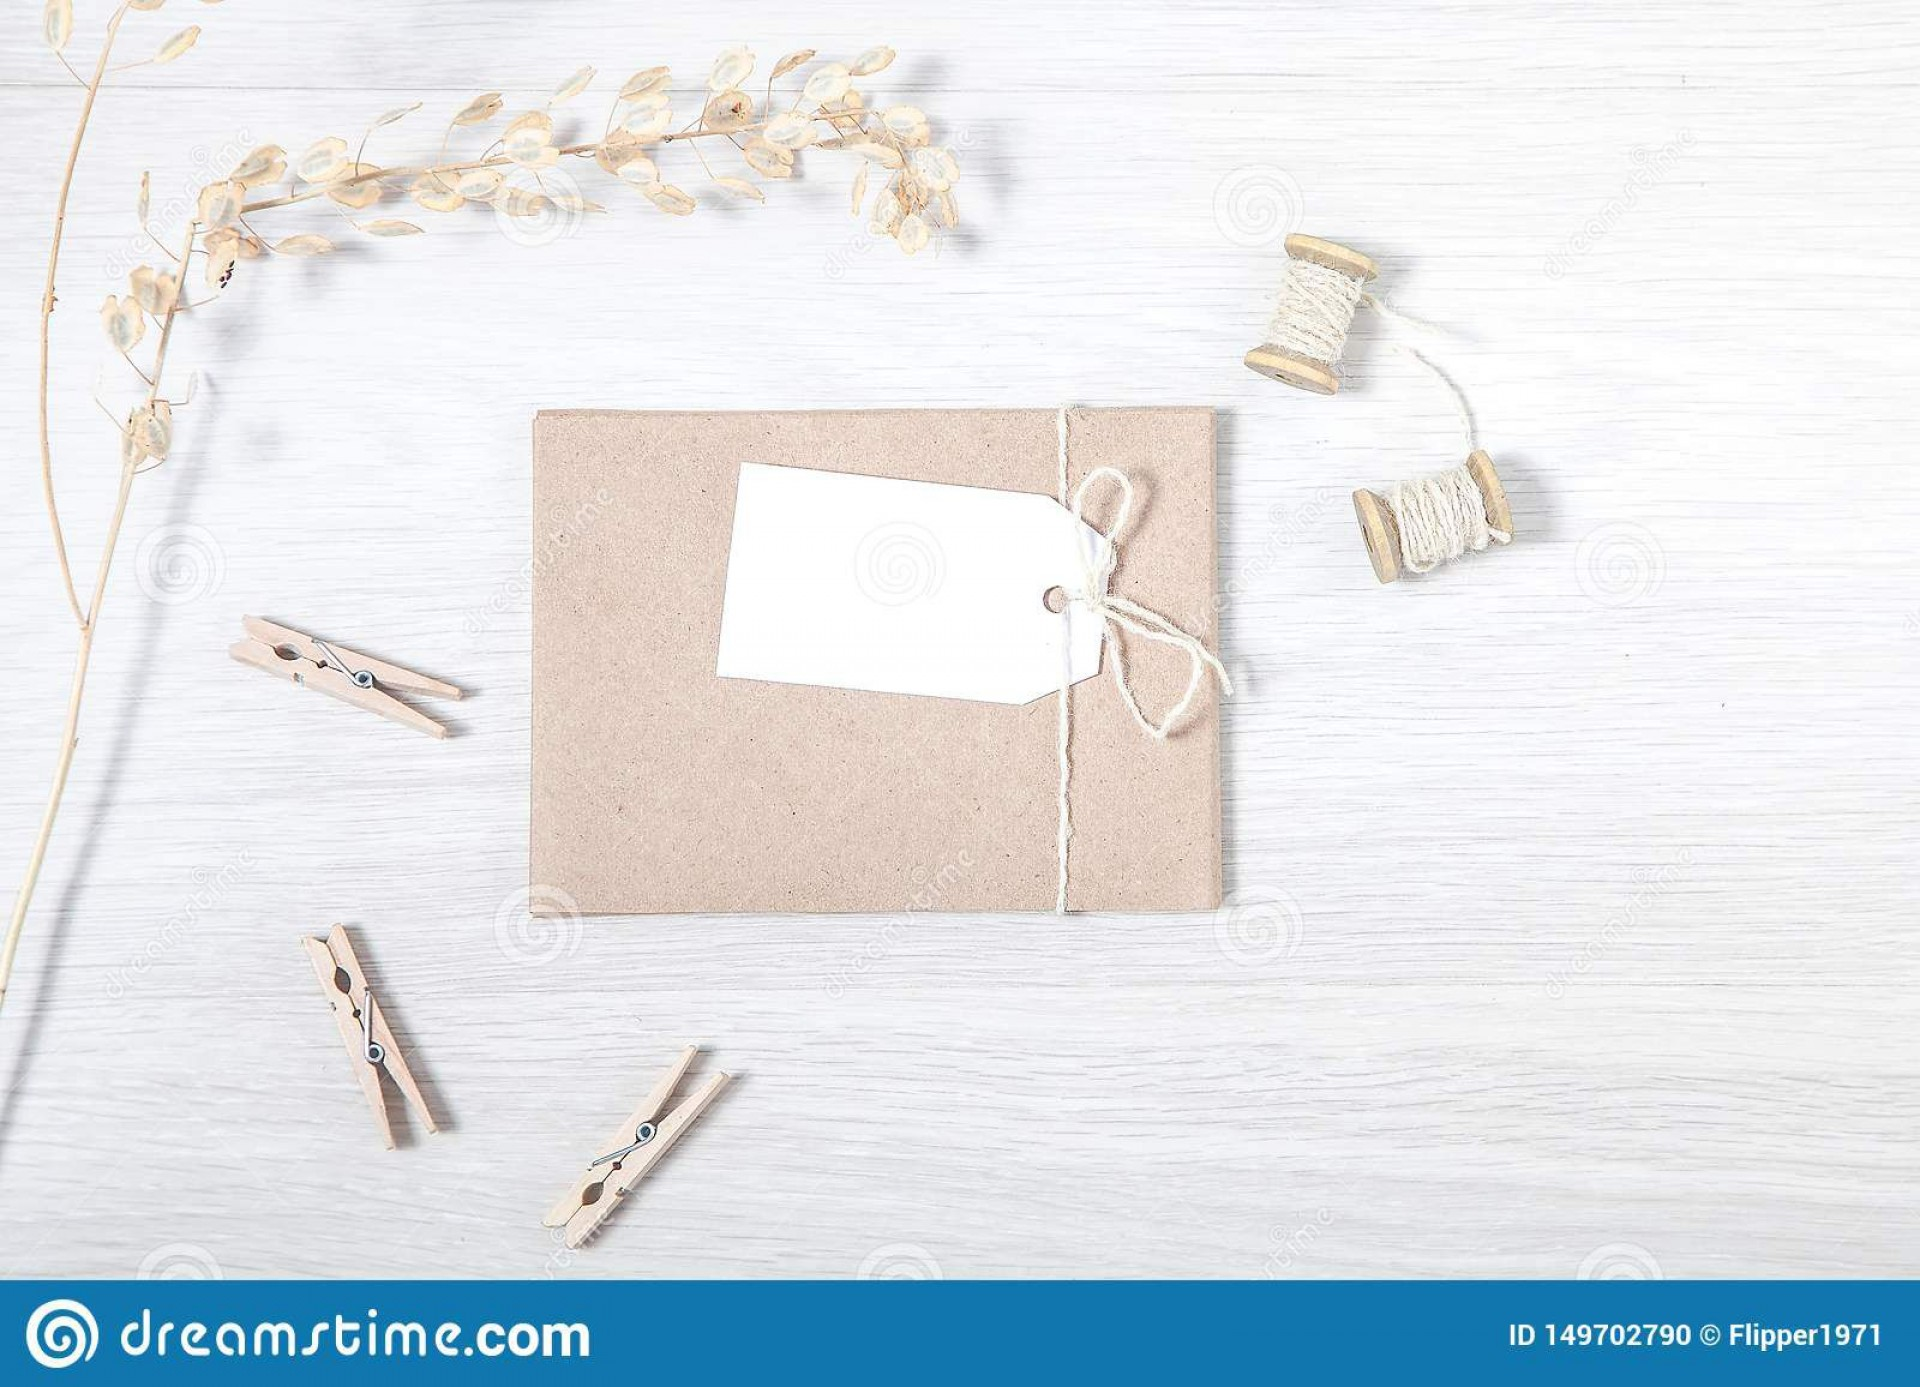 009 Archaicawful Wedding Favor Tag Template Photo  Templates Editable Free Party Printable1920